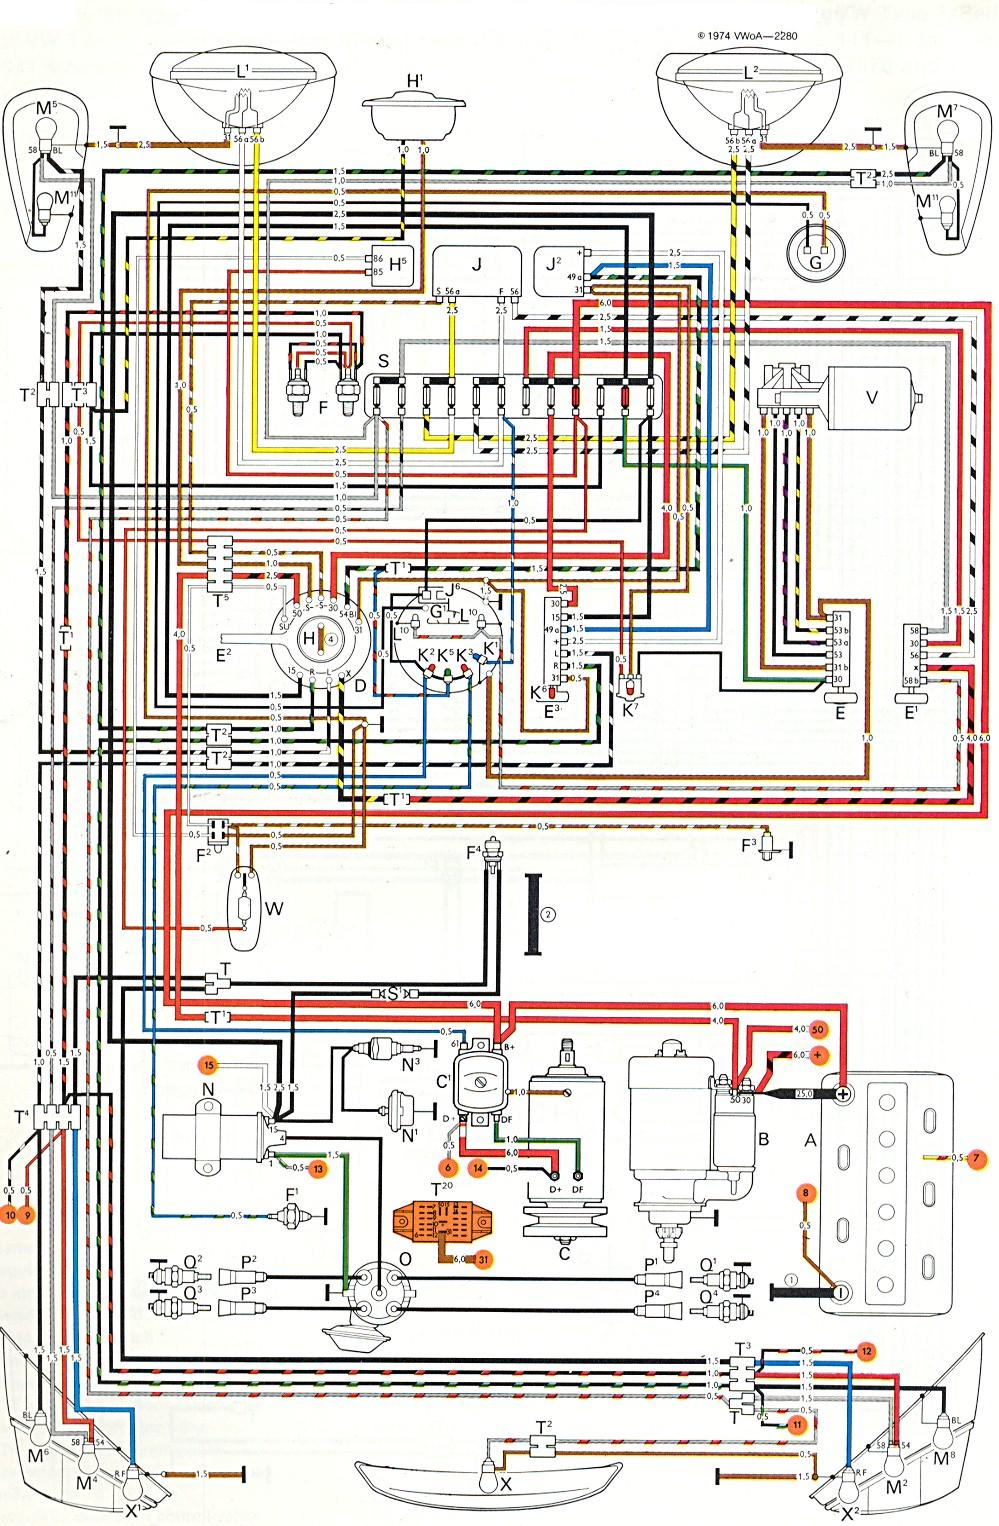 medium resolution of vw wiring harness diagram wiring diagram schema blogvw wiring harness diagram wiring diagram 2001 vw passat